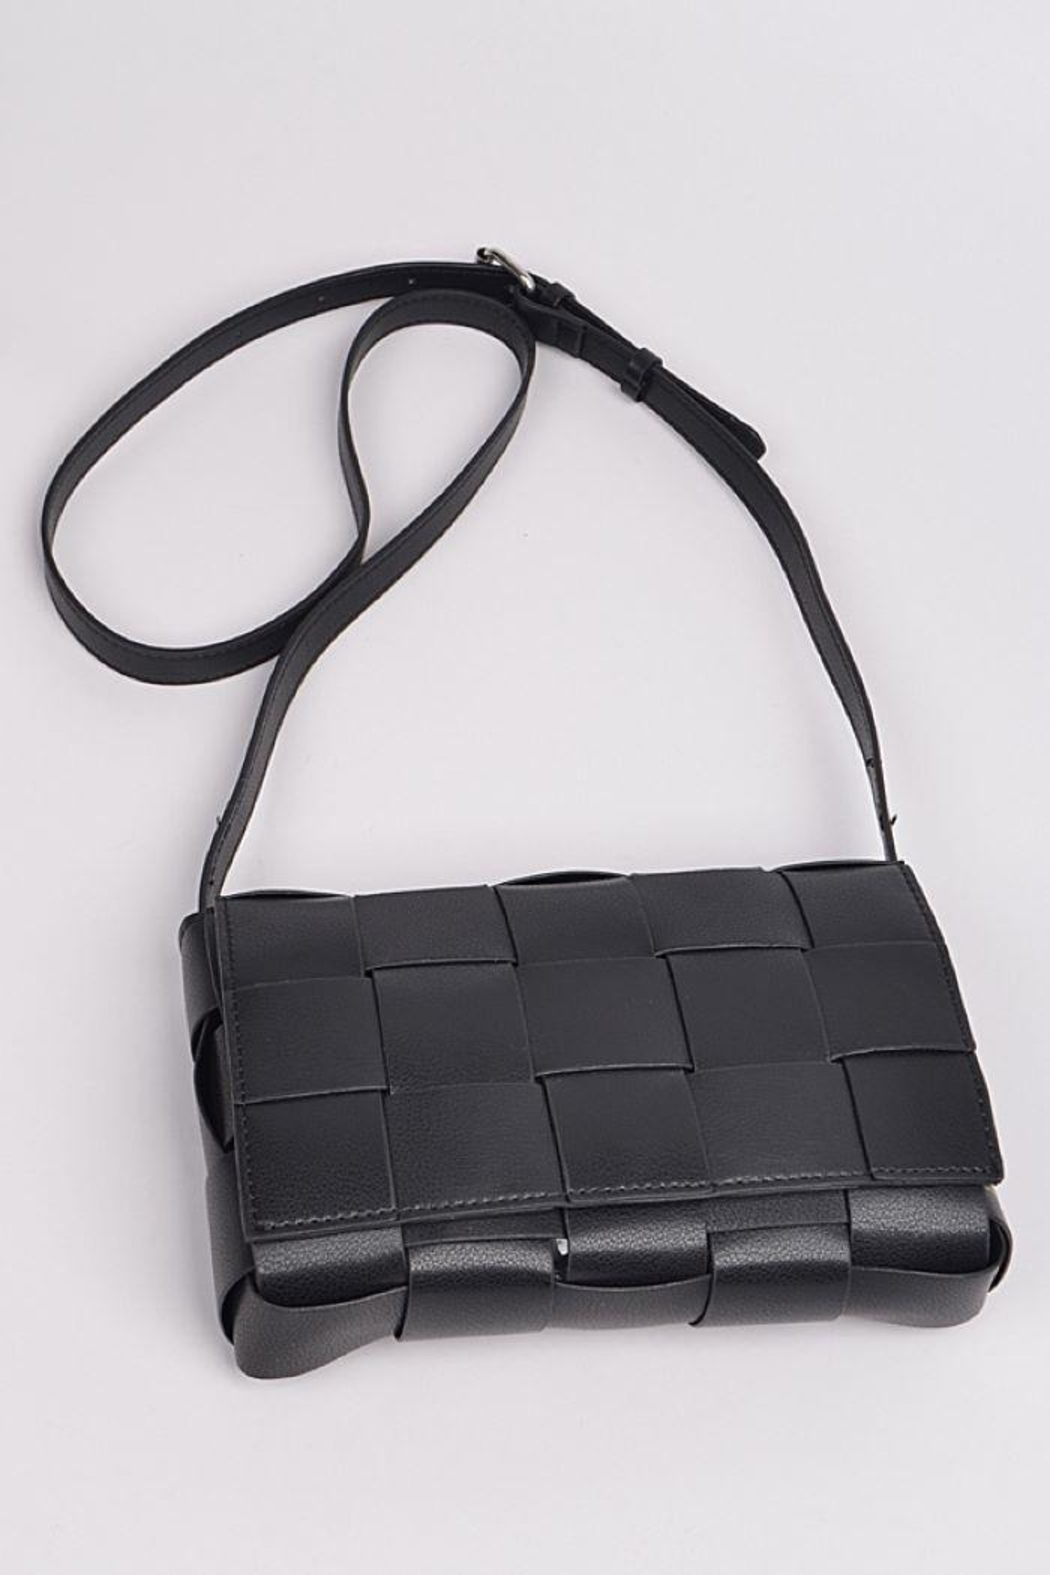 H&D Accessories Monotone Weaving Leather Clutch - Back Cropped Image